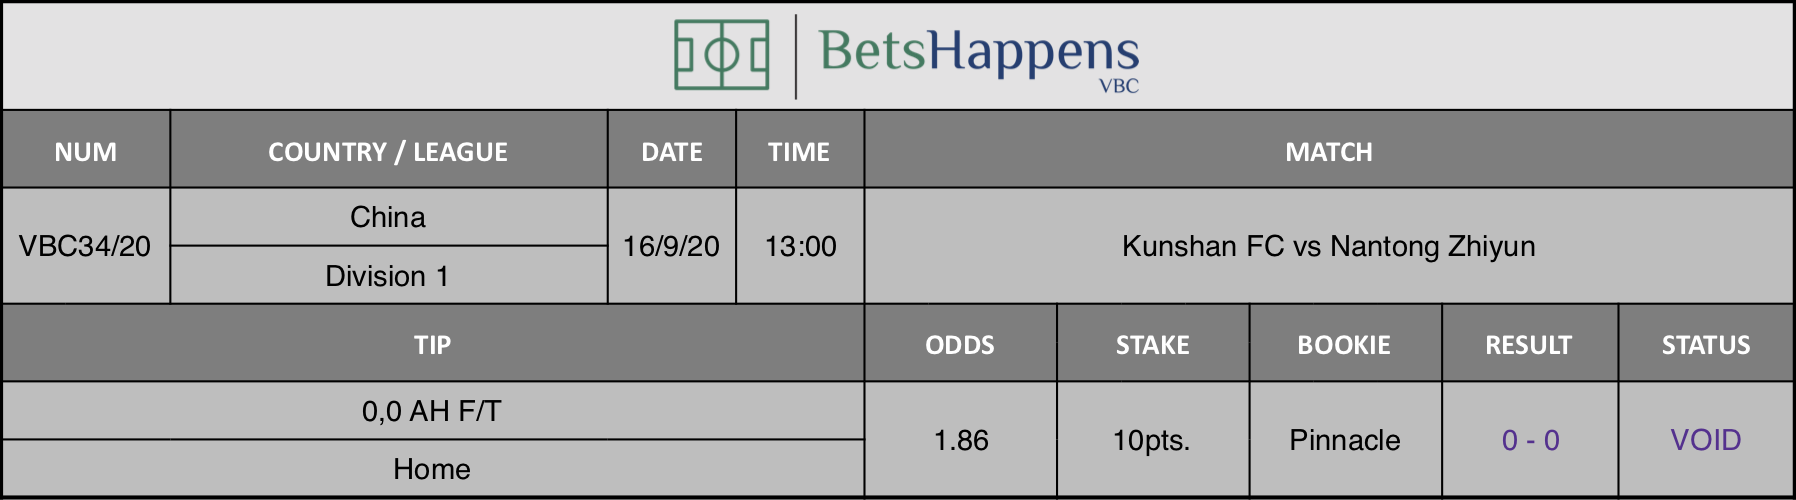 Results of our advice for the Kunshan FC vs Nantong Zhiyun match where 0.0 AH F / T Home is recommended.